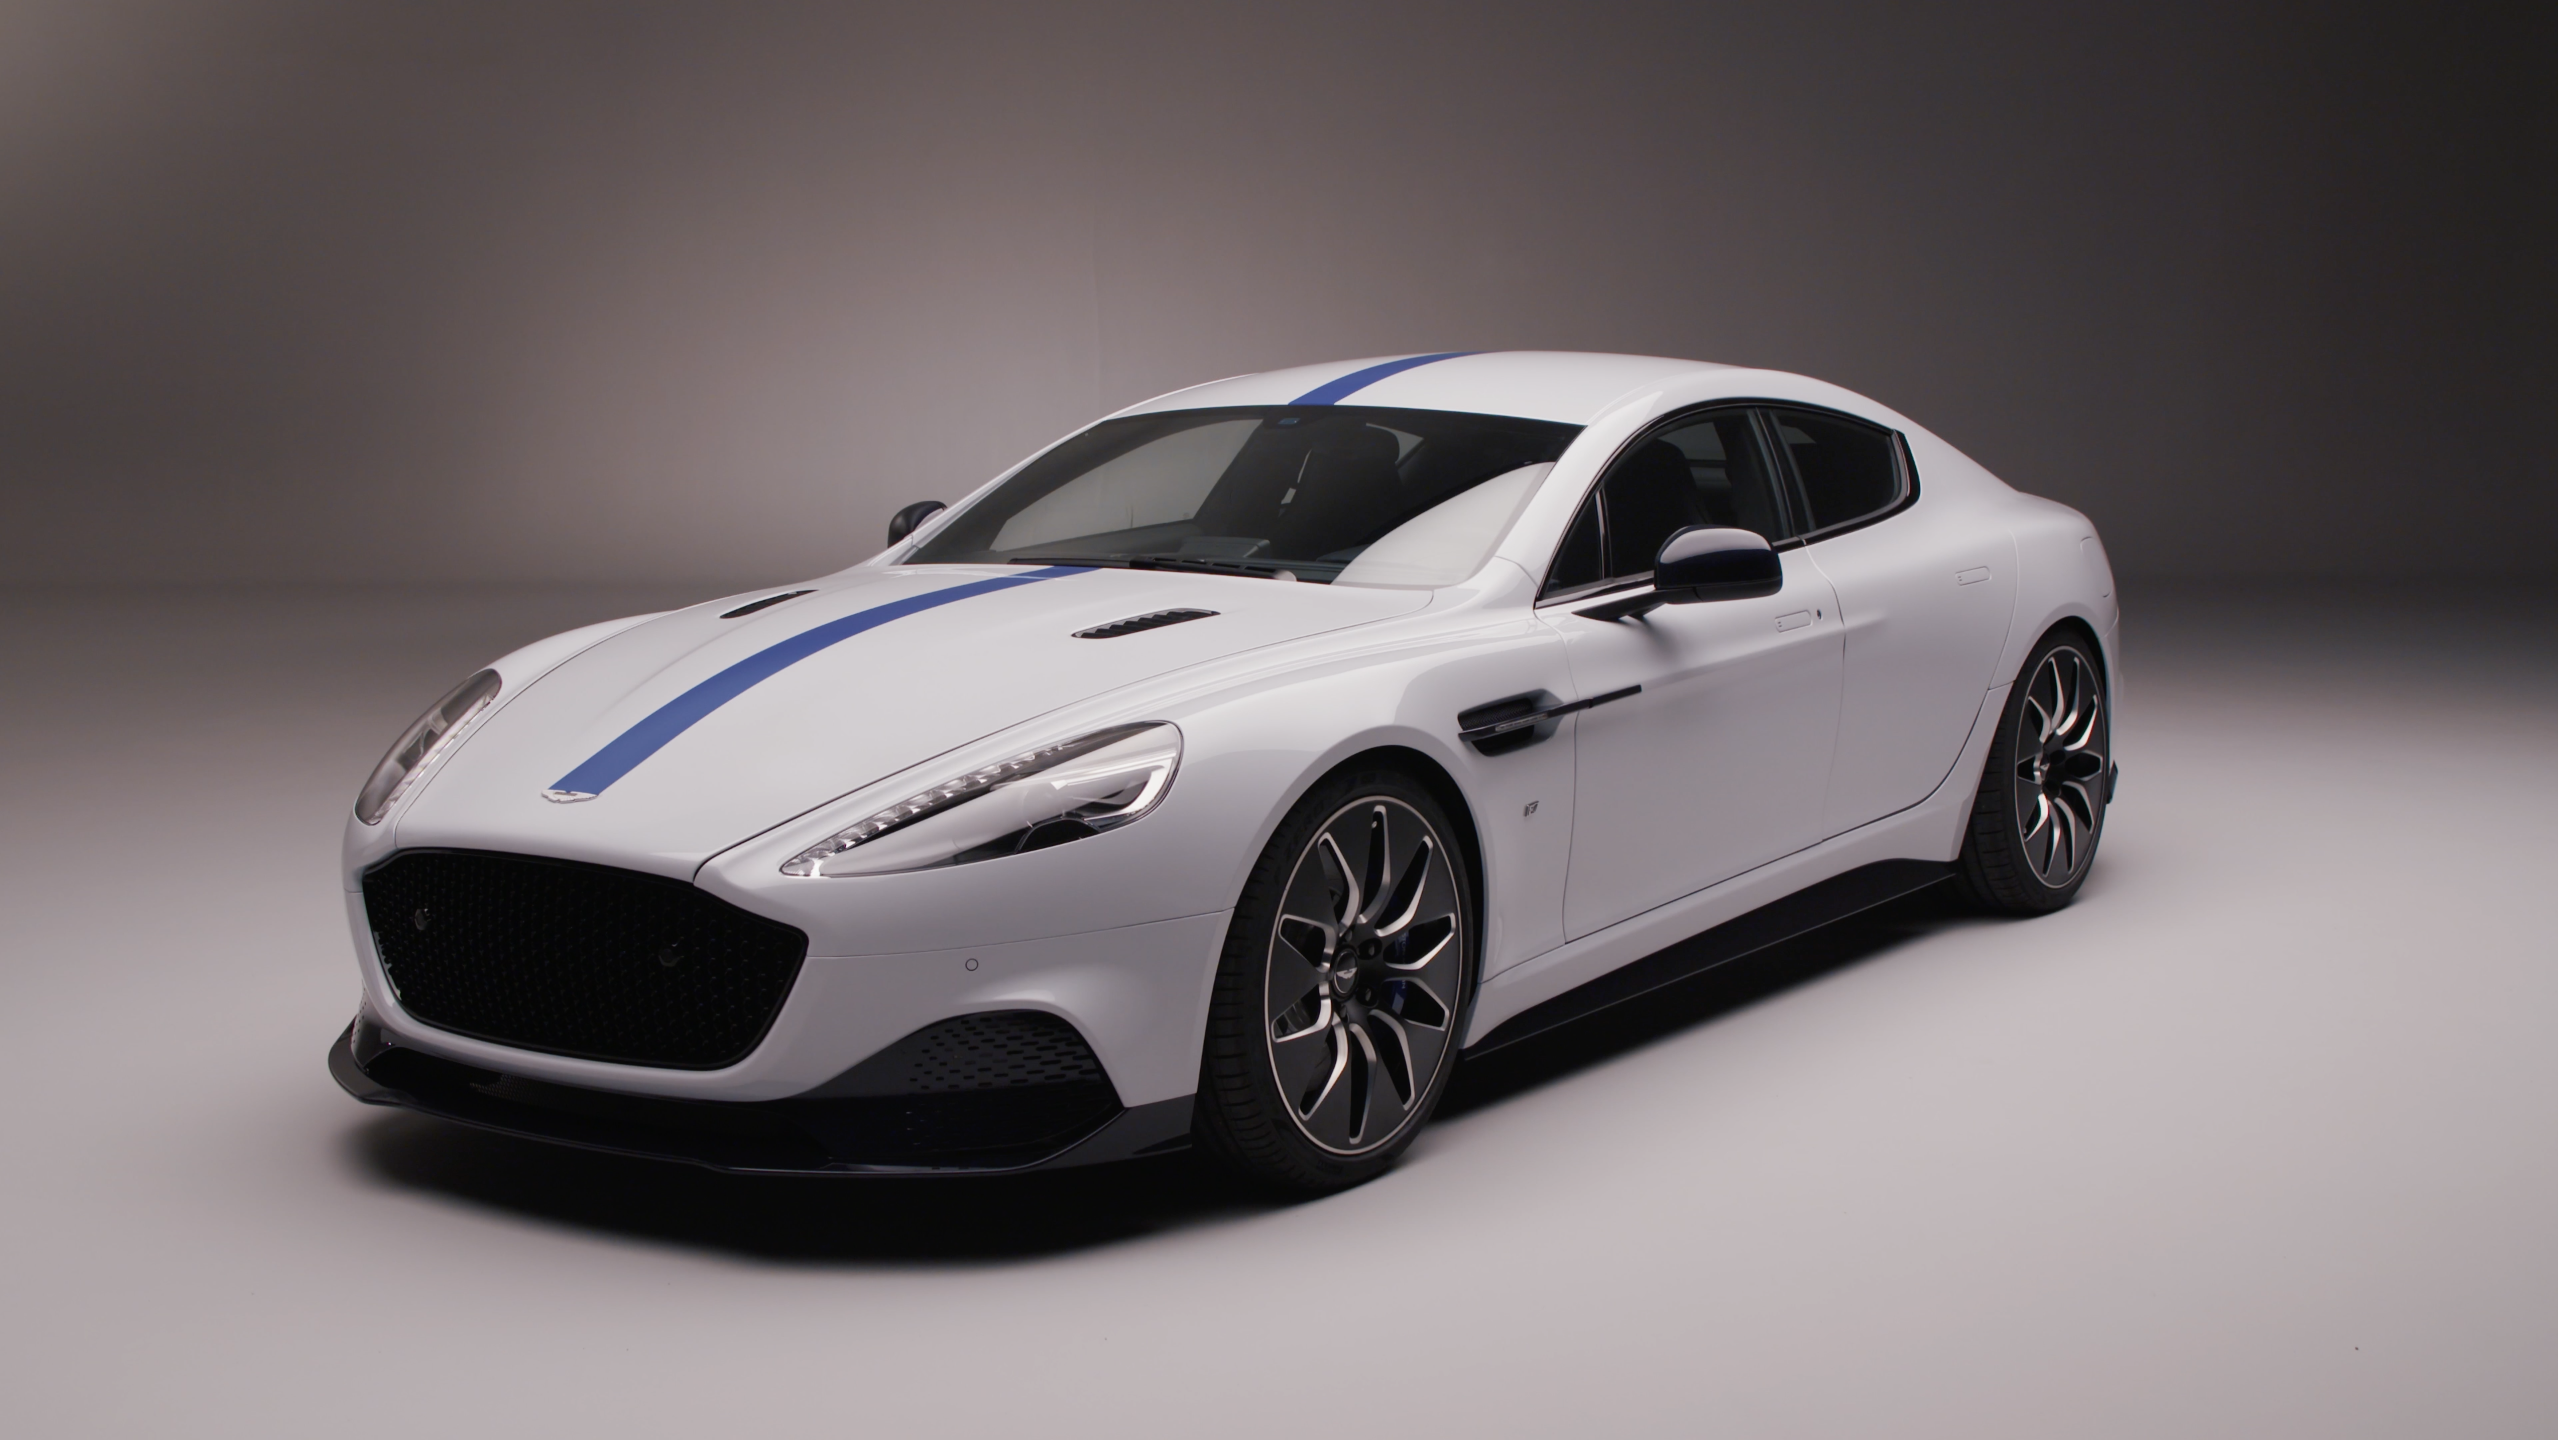 Video: The Aston Martin Rapide E ditches the V12 for an all-electric drive